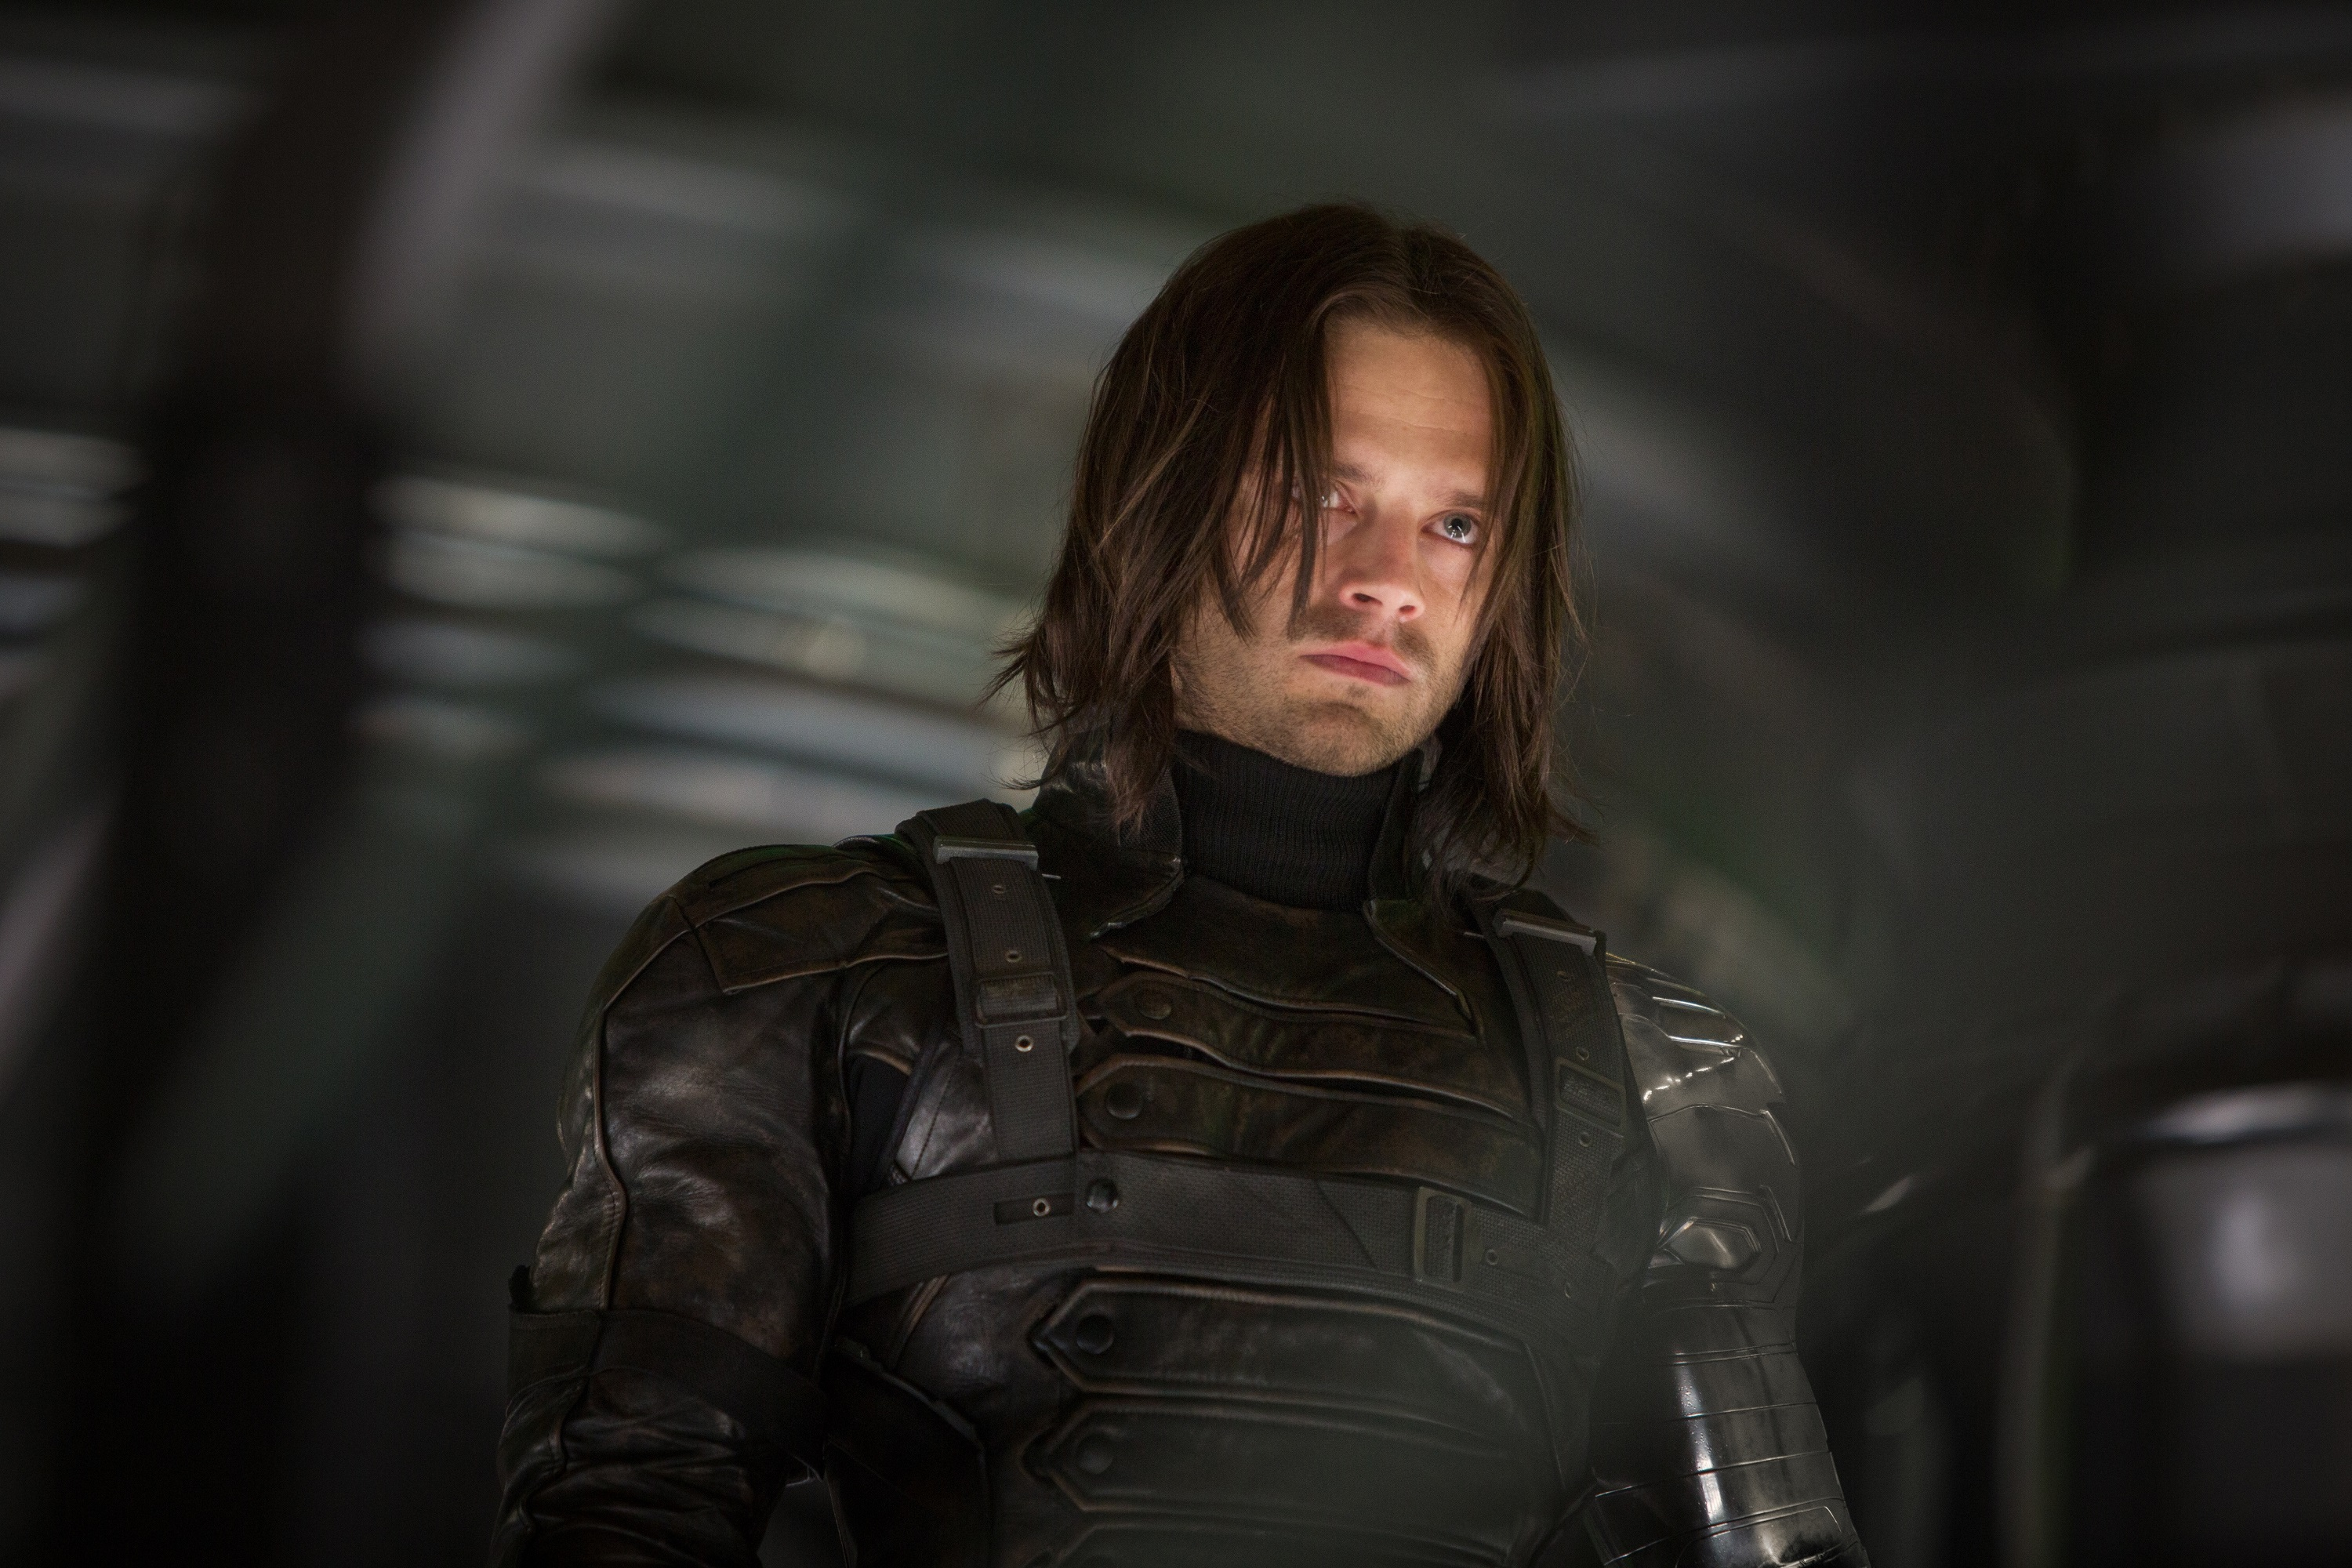 Fantastic Wallpaper Marvel Winter Soldier - latest?cb\u003d20150717171734  Perfect Image Reference_1276.jpg/revision/latest?cb\u003d20150717171734